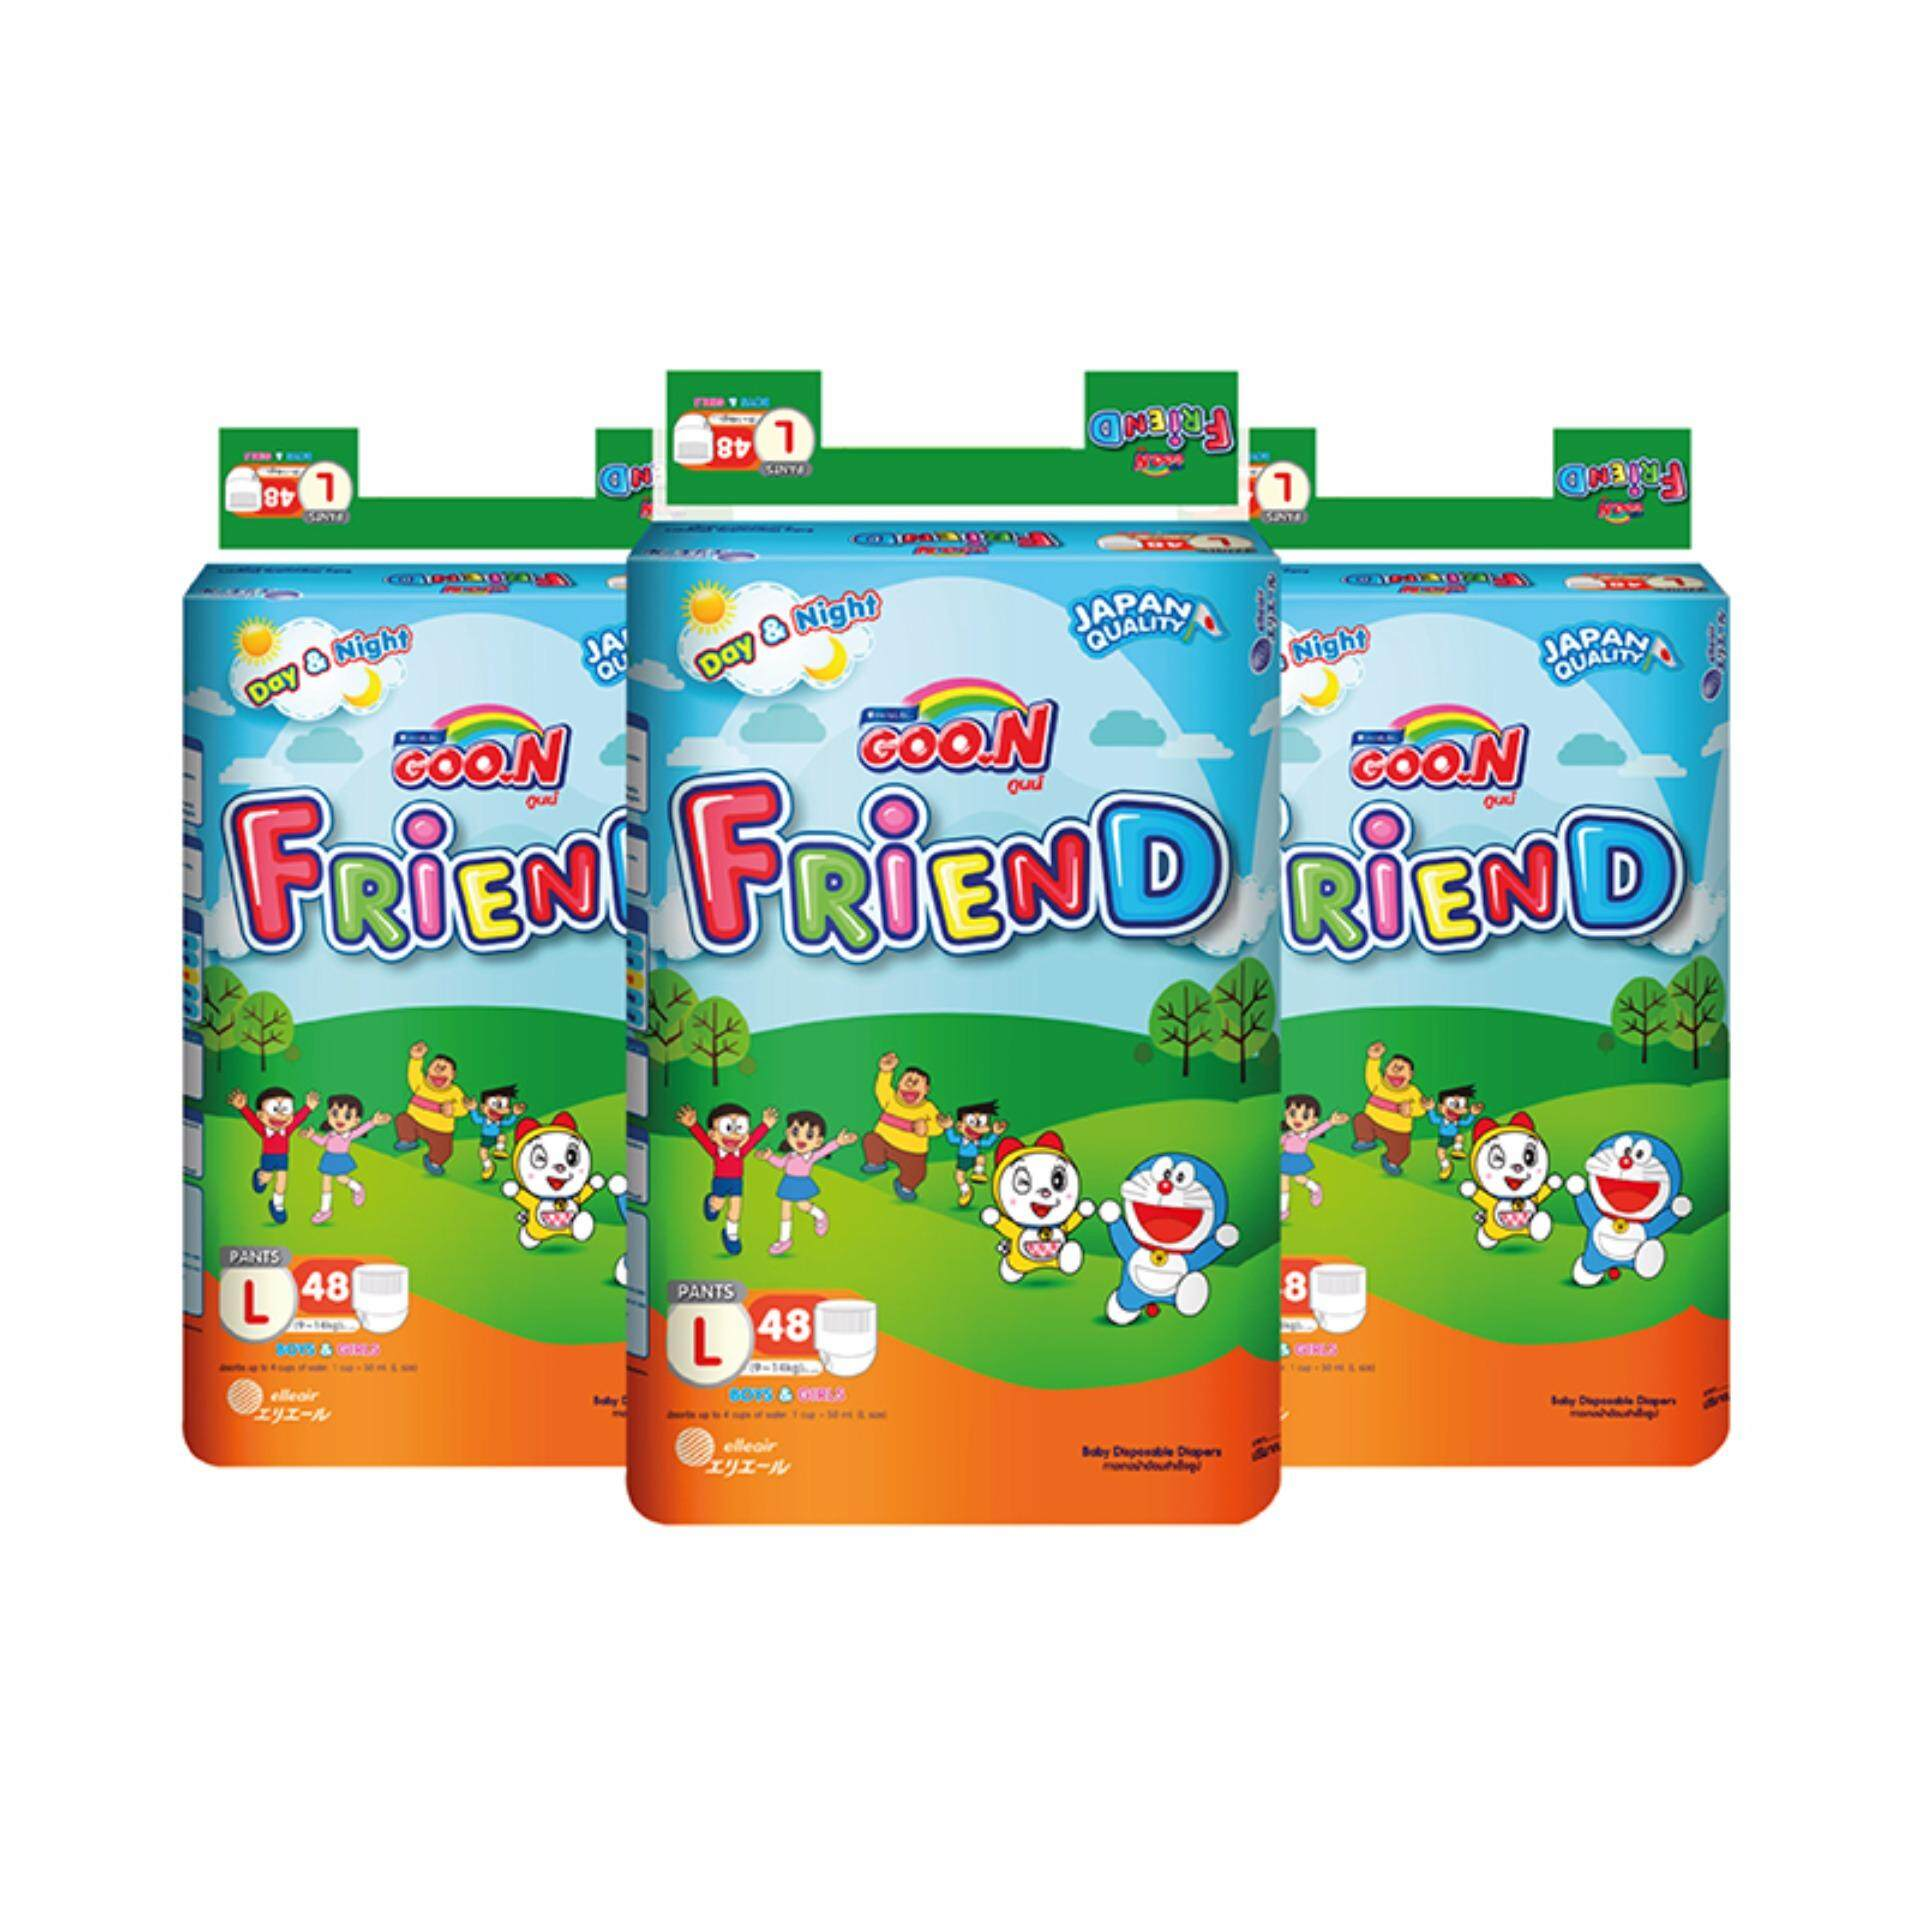 Disposable Diapers By Goon Reviews Ratings And Best Price In Kl Excellent Dry Nb 48 Baby Diaper Friend Pants L48 3 Packs